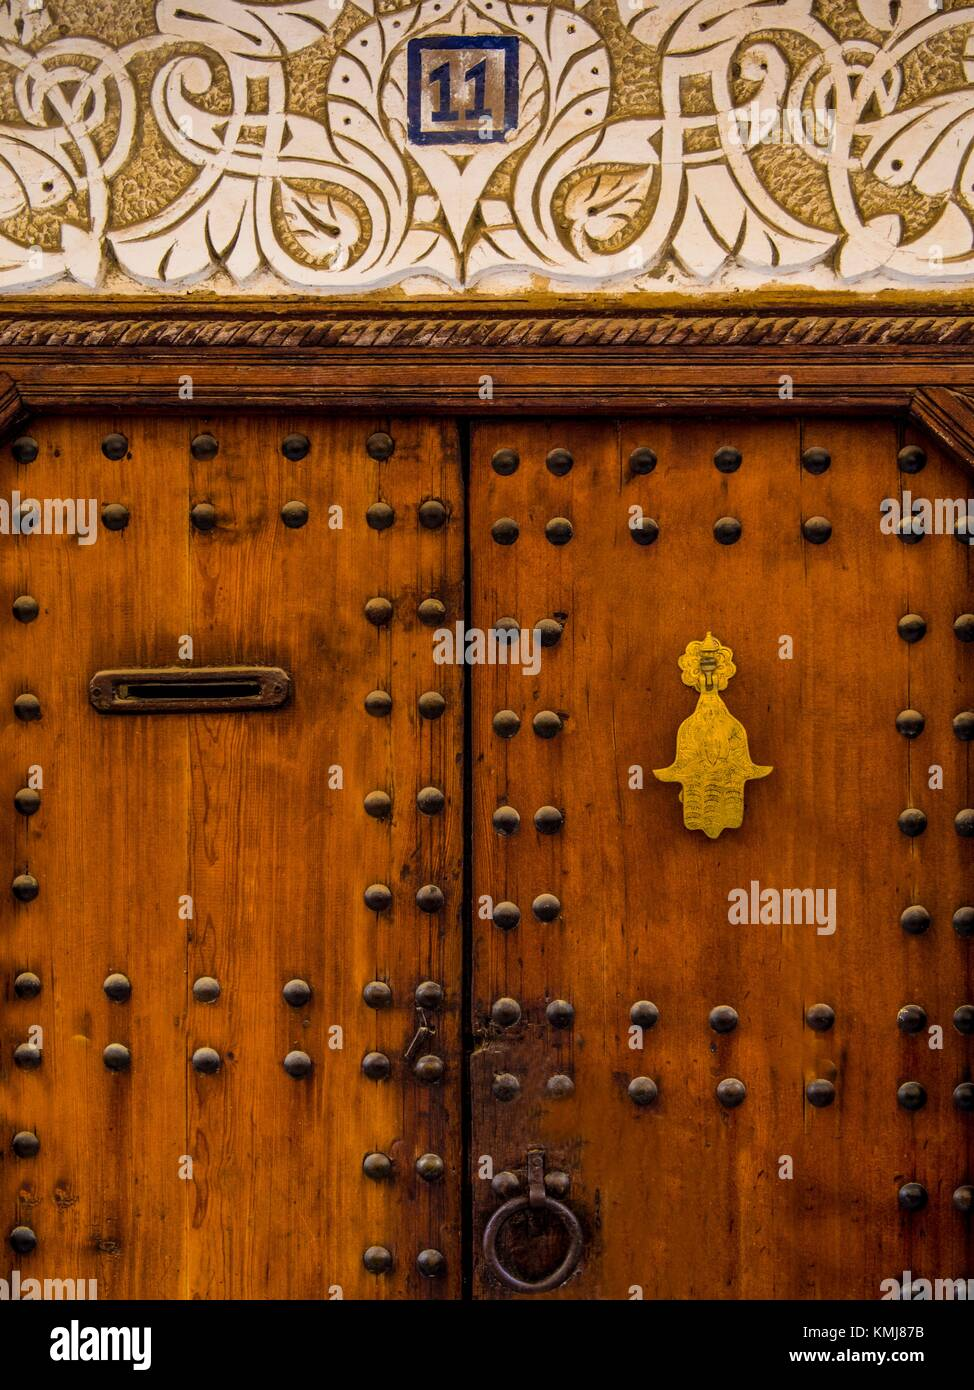 Morocco, Fes, doorway in the ''Medina'' (old part) of Fes. - Stock Image